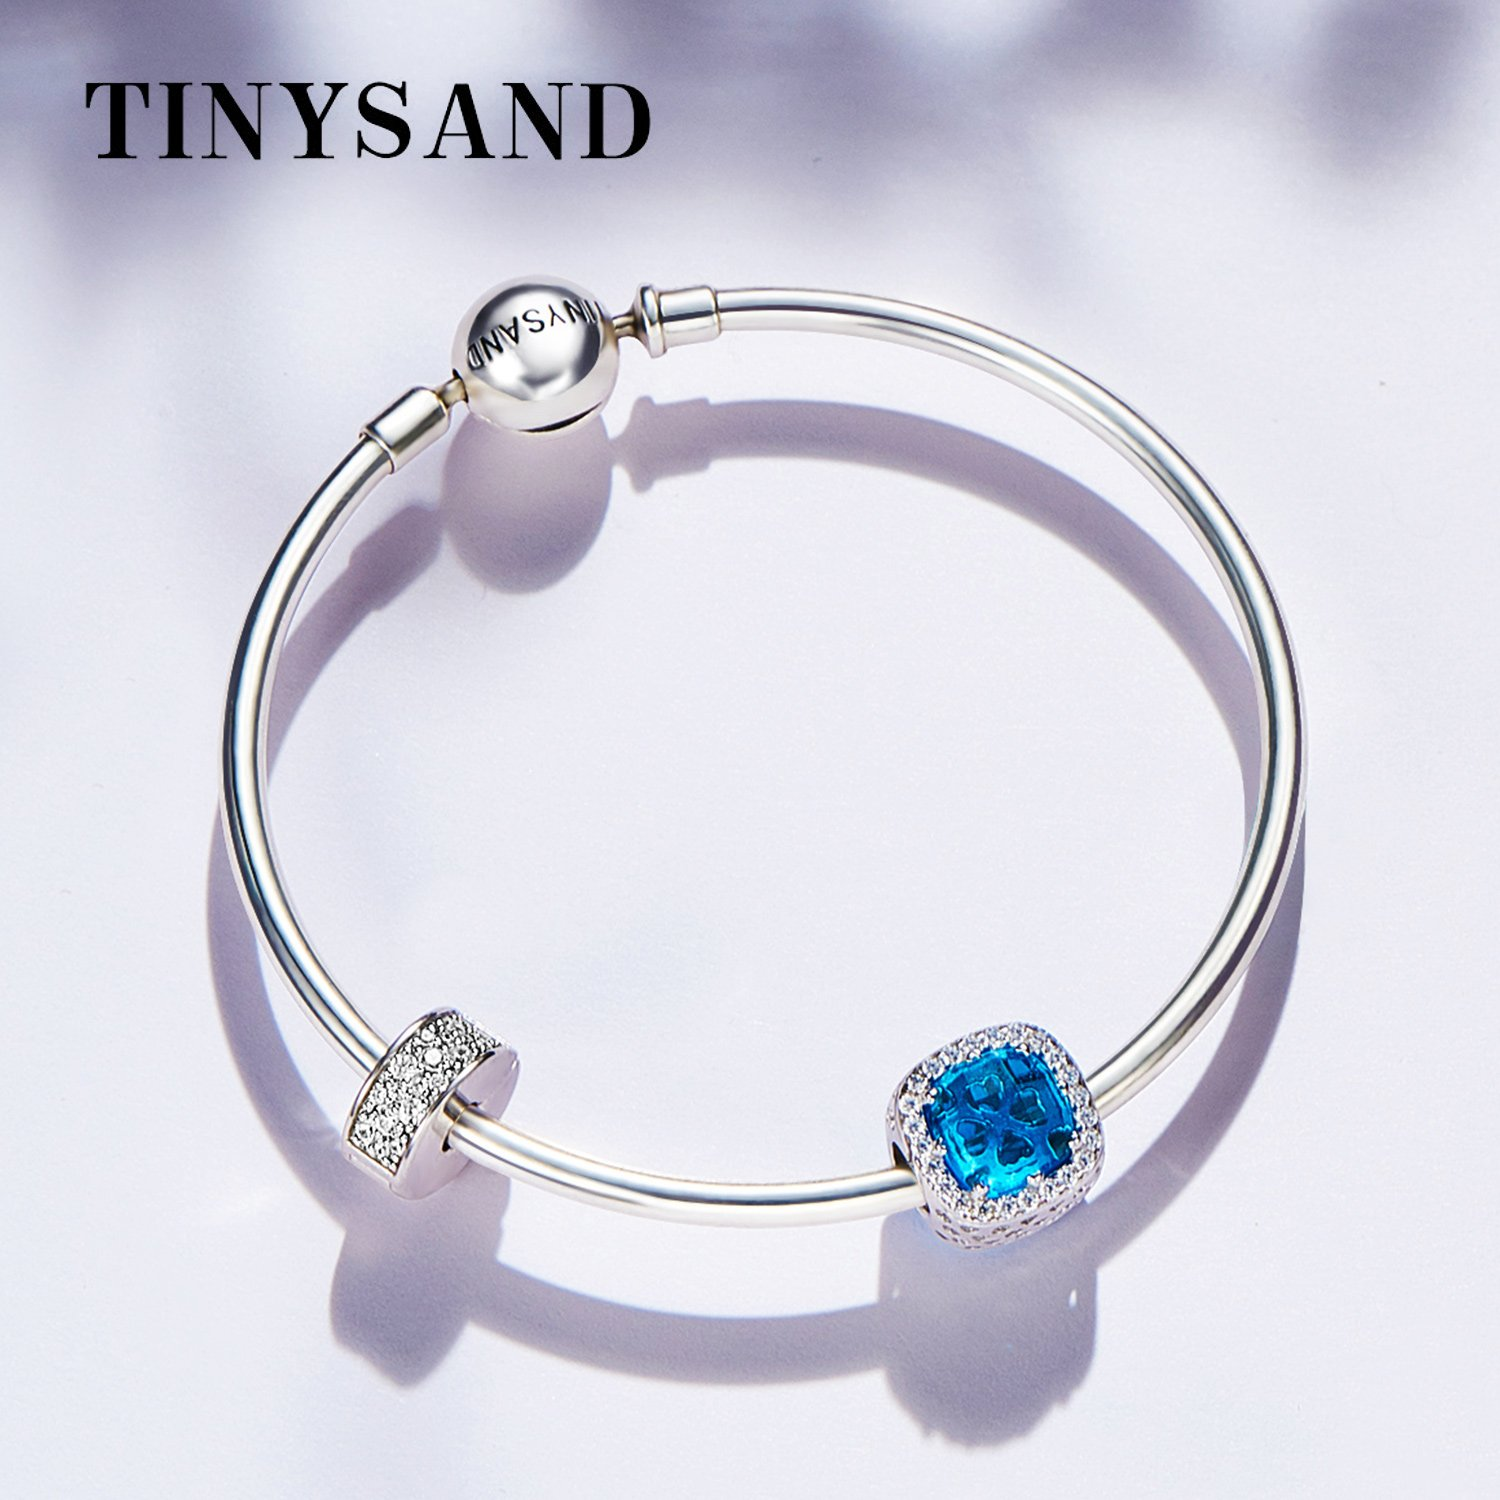 TINYSAND 925 Sterling Silver Dazzling CZ Clip Lock Stopper Spacers Charms Beads Fits European Snake Bracelet Bangle Unique Jewelry for Girls Women by TINYSAND (Image #2)